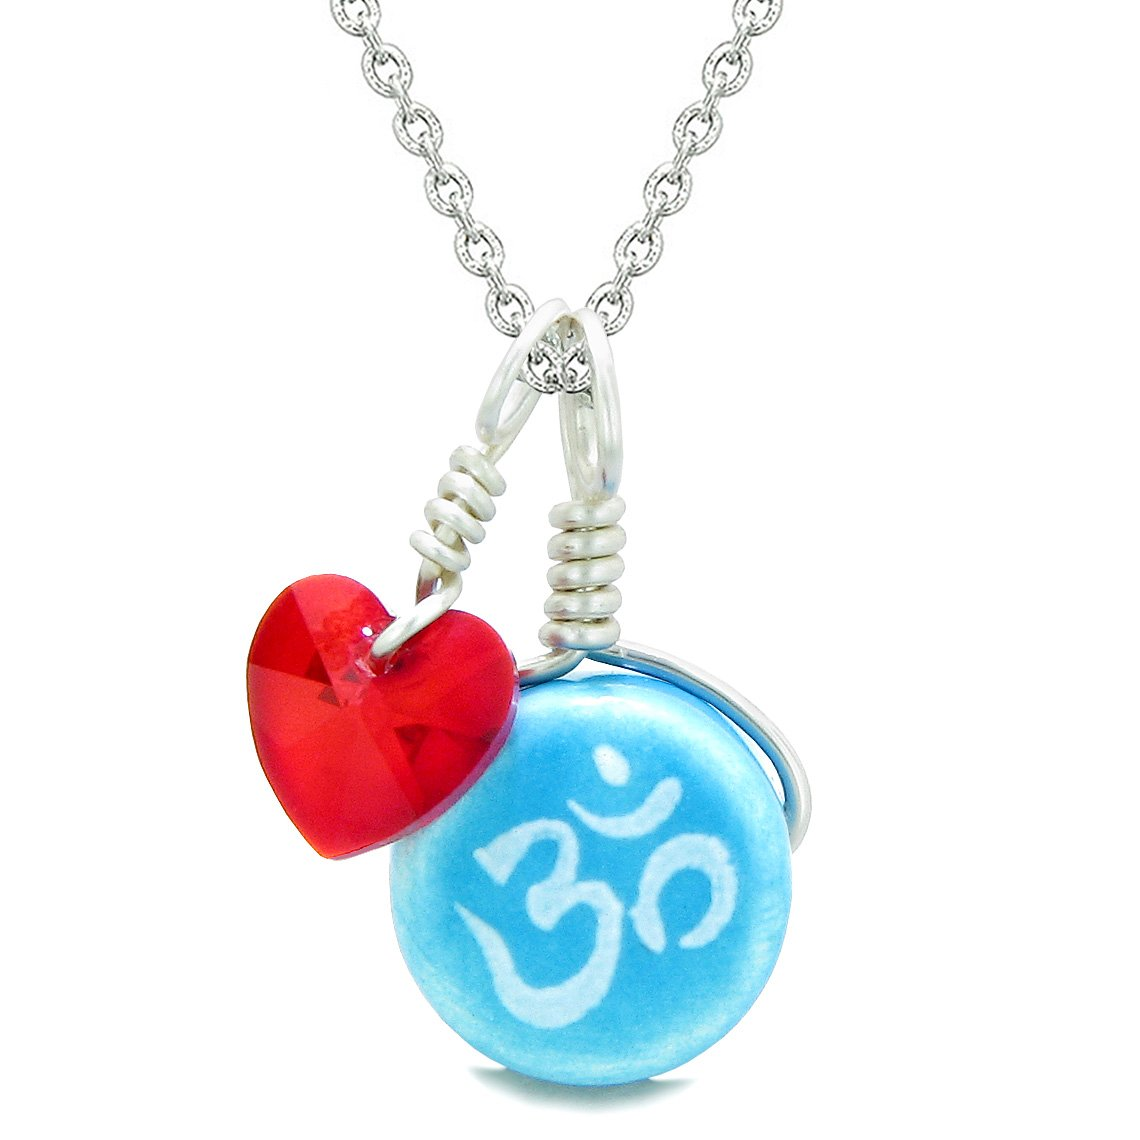 Handcrafted Cute Ceramic Lucky Charm Aqua OM Ohm Tibetan Red Heart Amulet Pendant 18 Inch Necklace